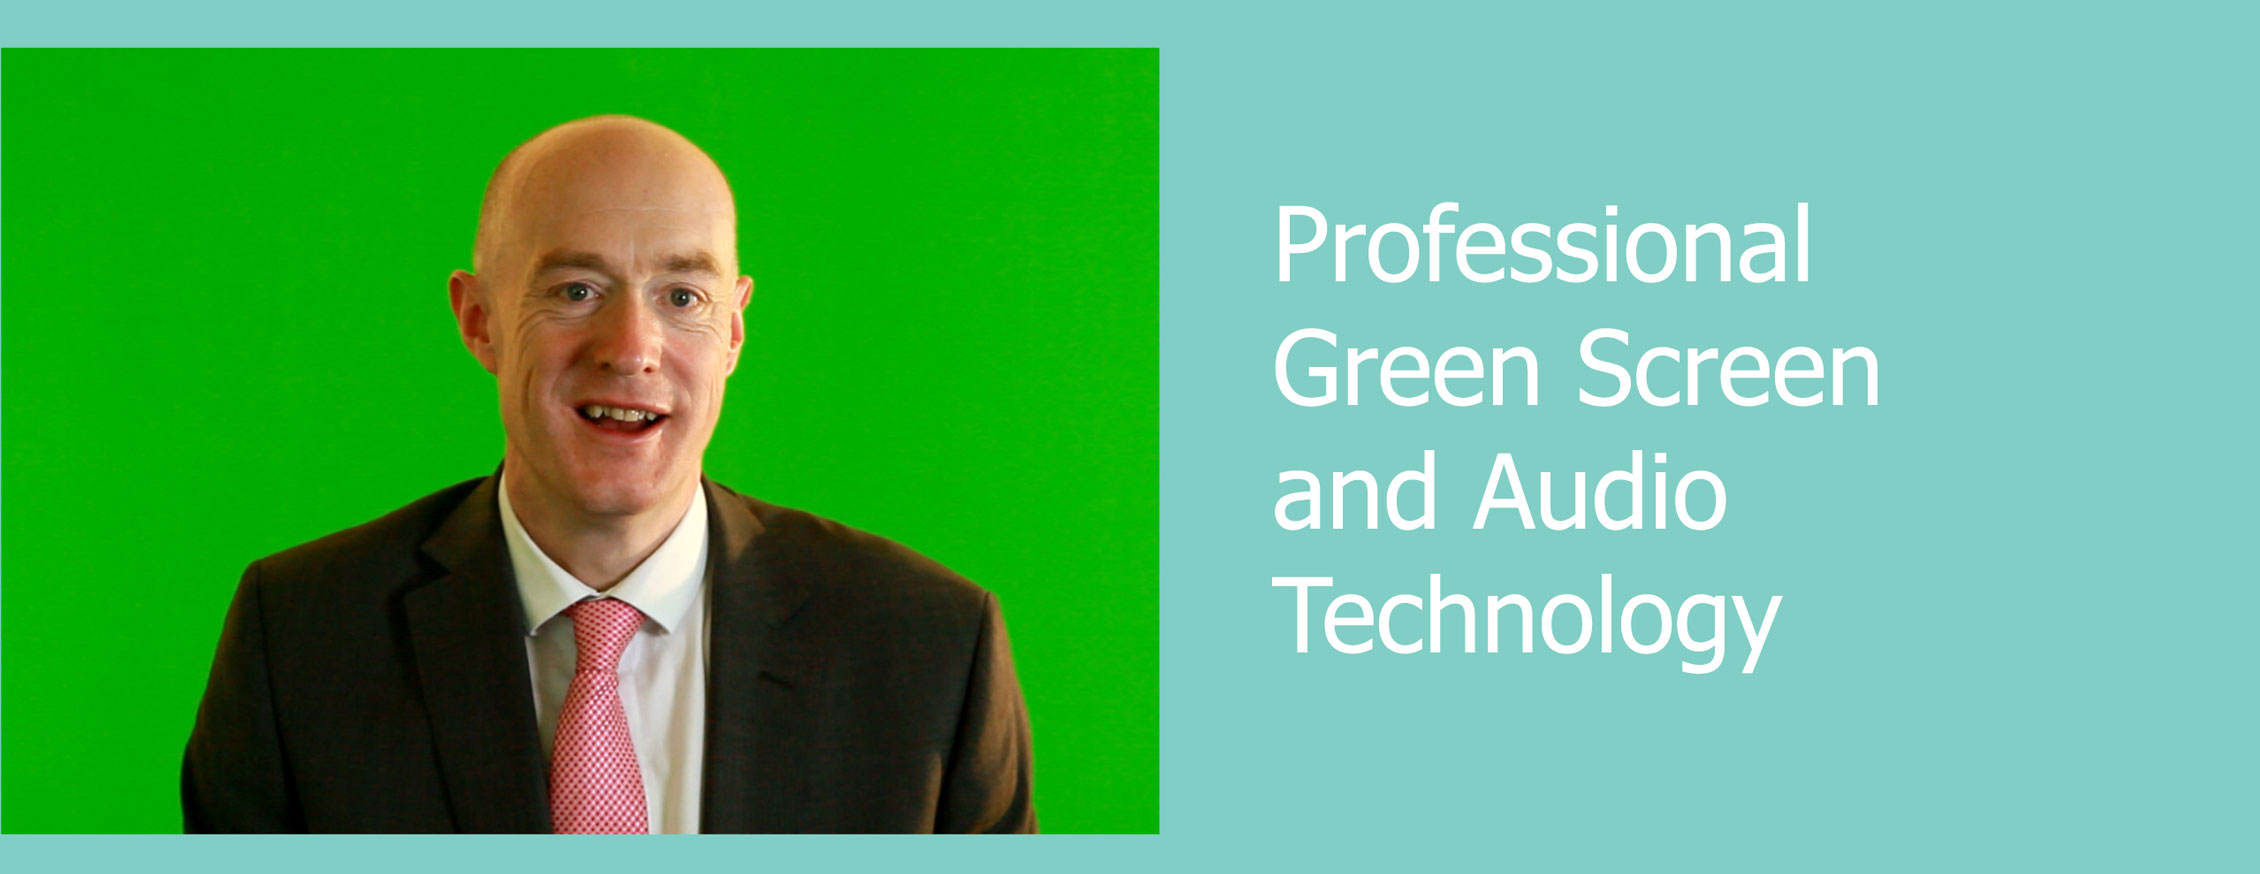 professional green screen and audio technology